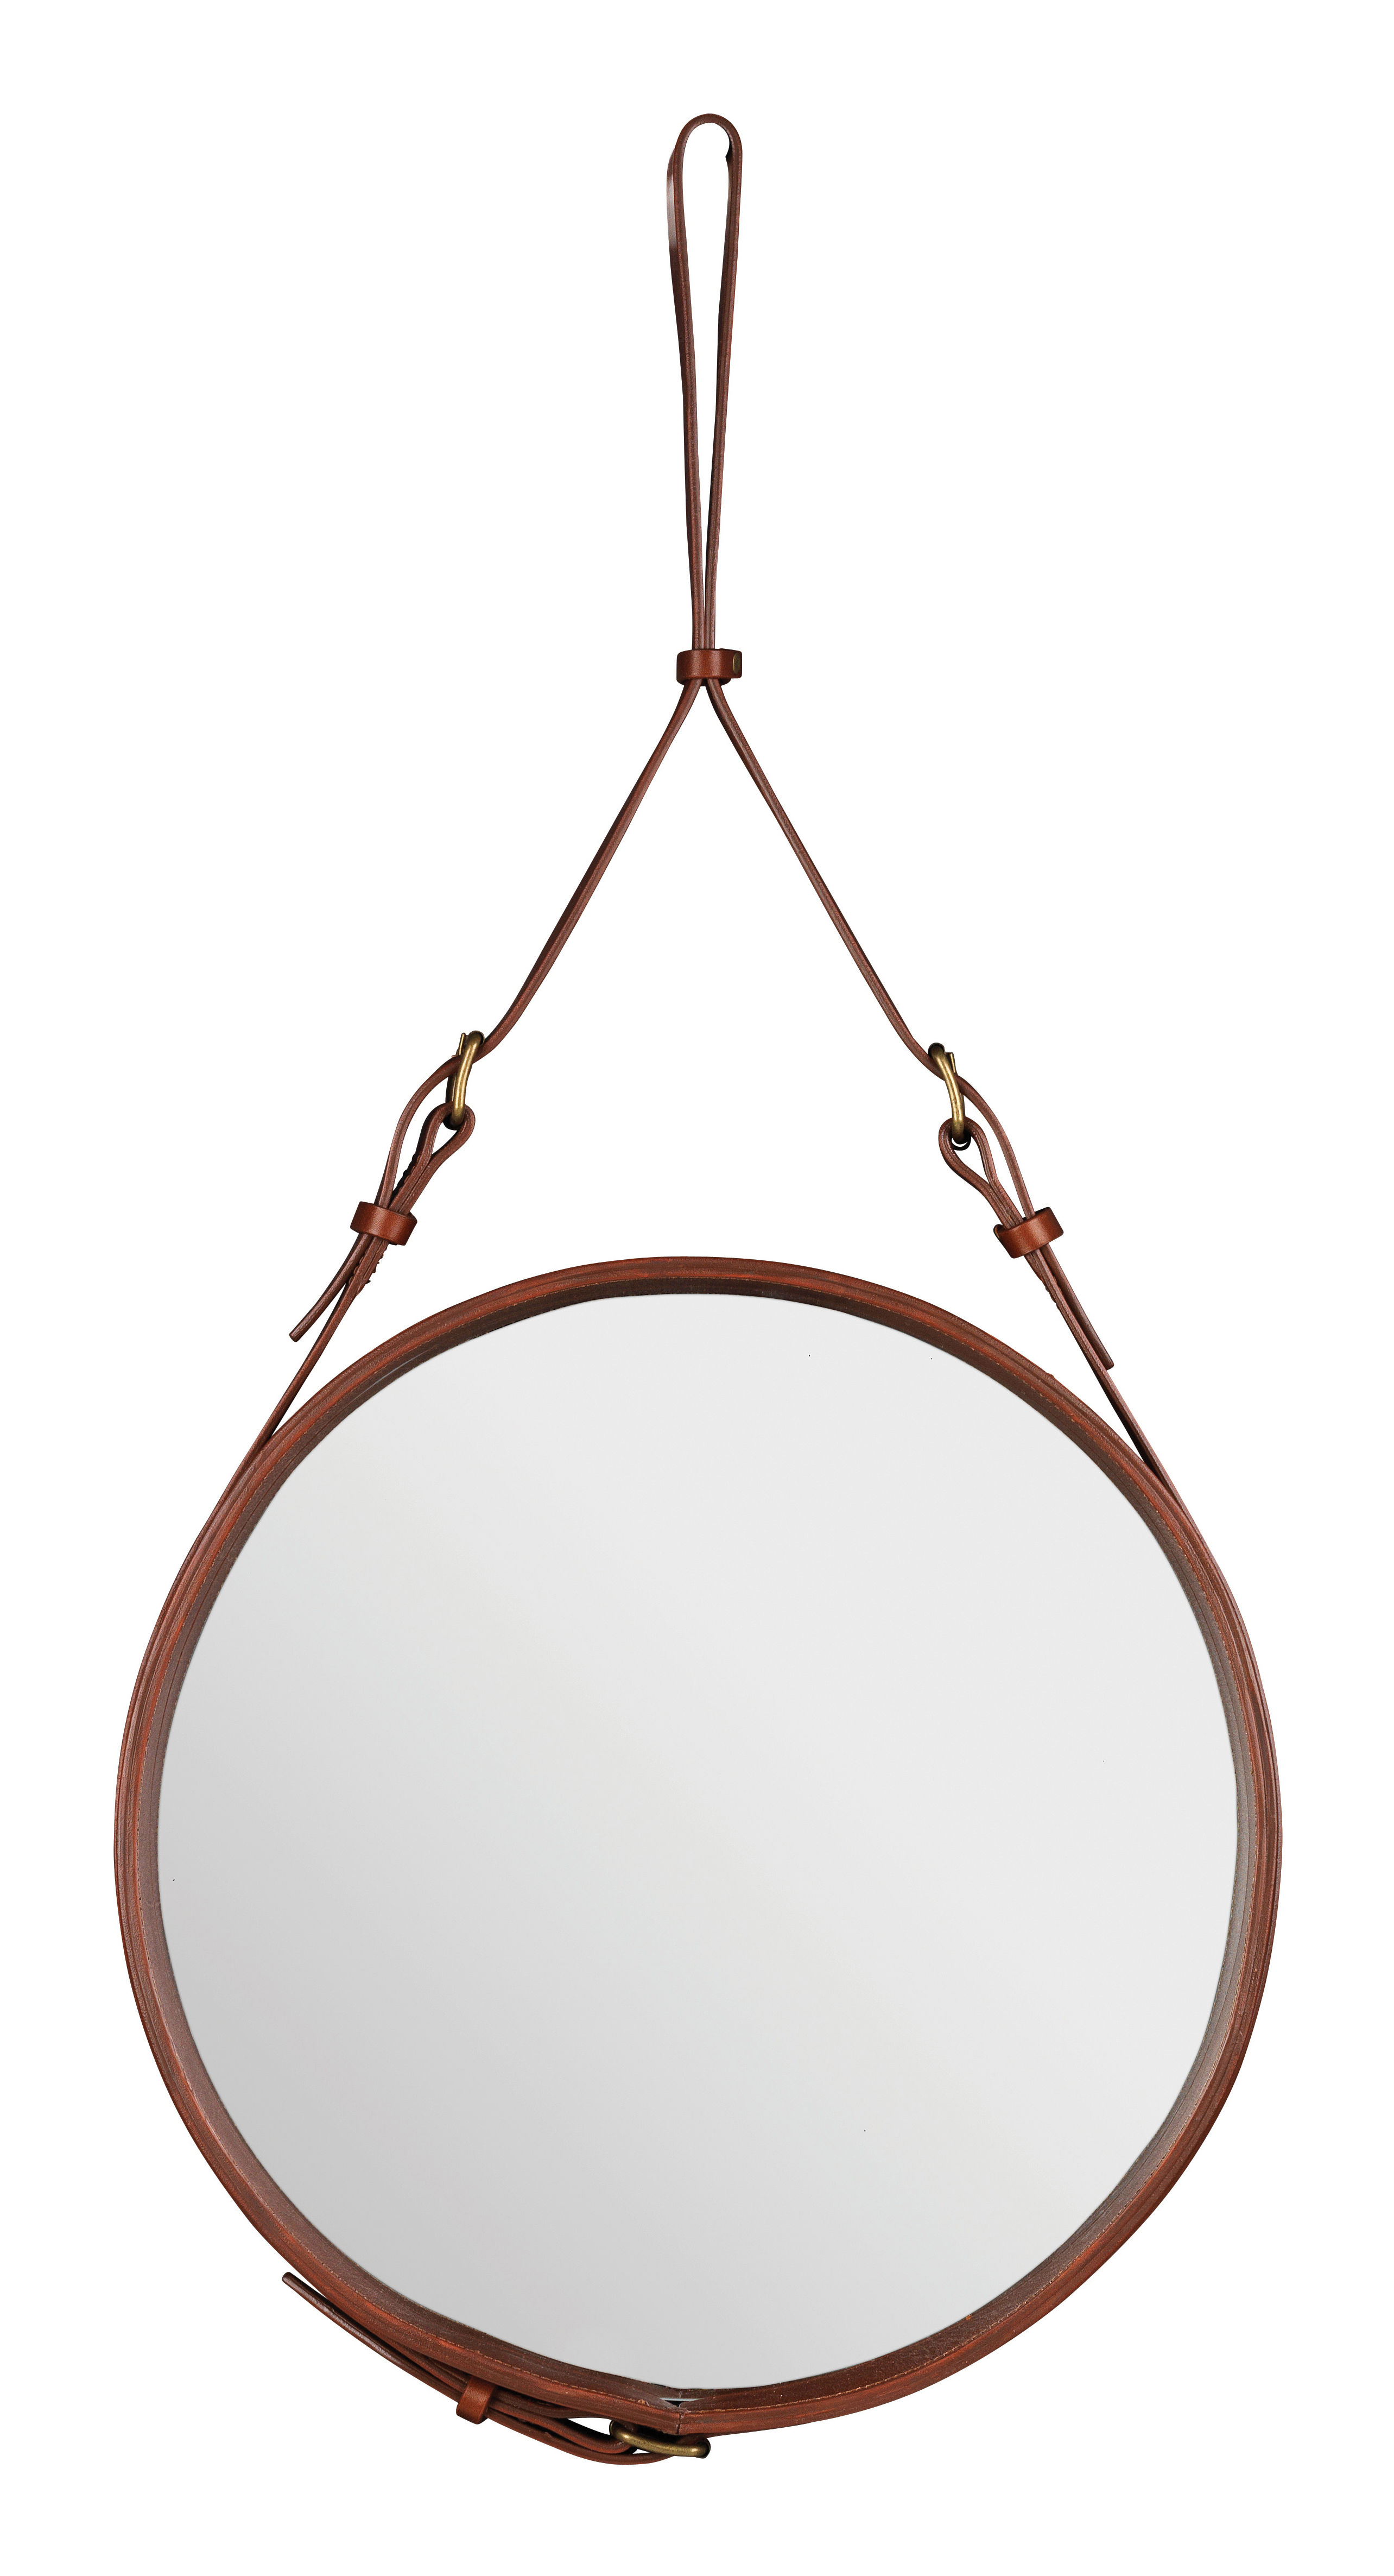 Furniture - Mirrors - Adnet Wall mirror - Ø 58 cm by Gubi - Brown - Leather